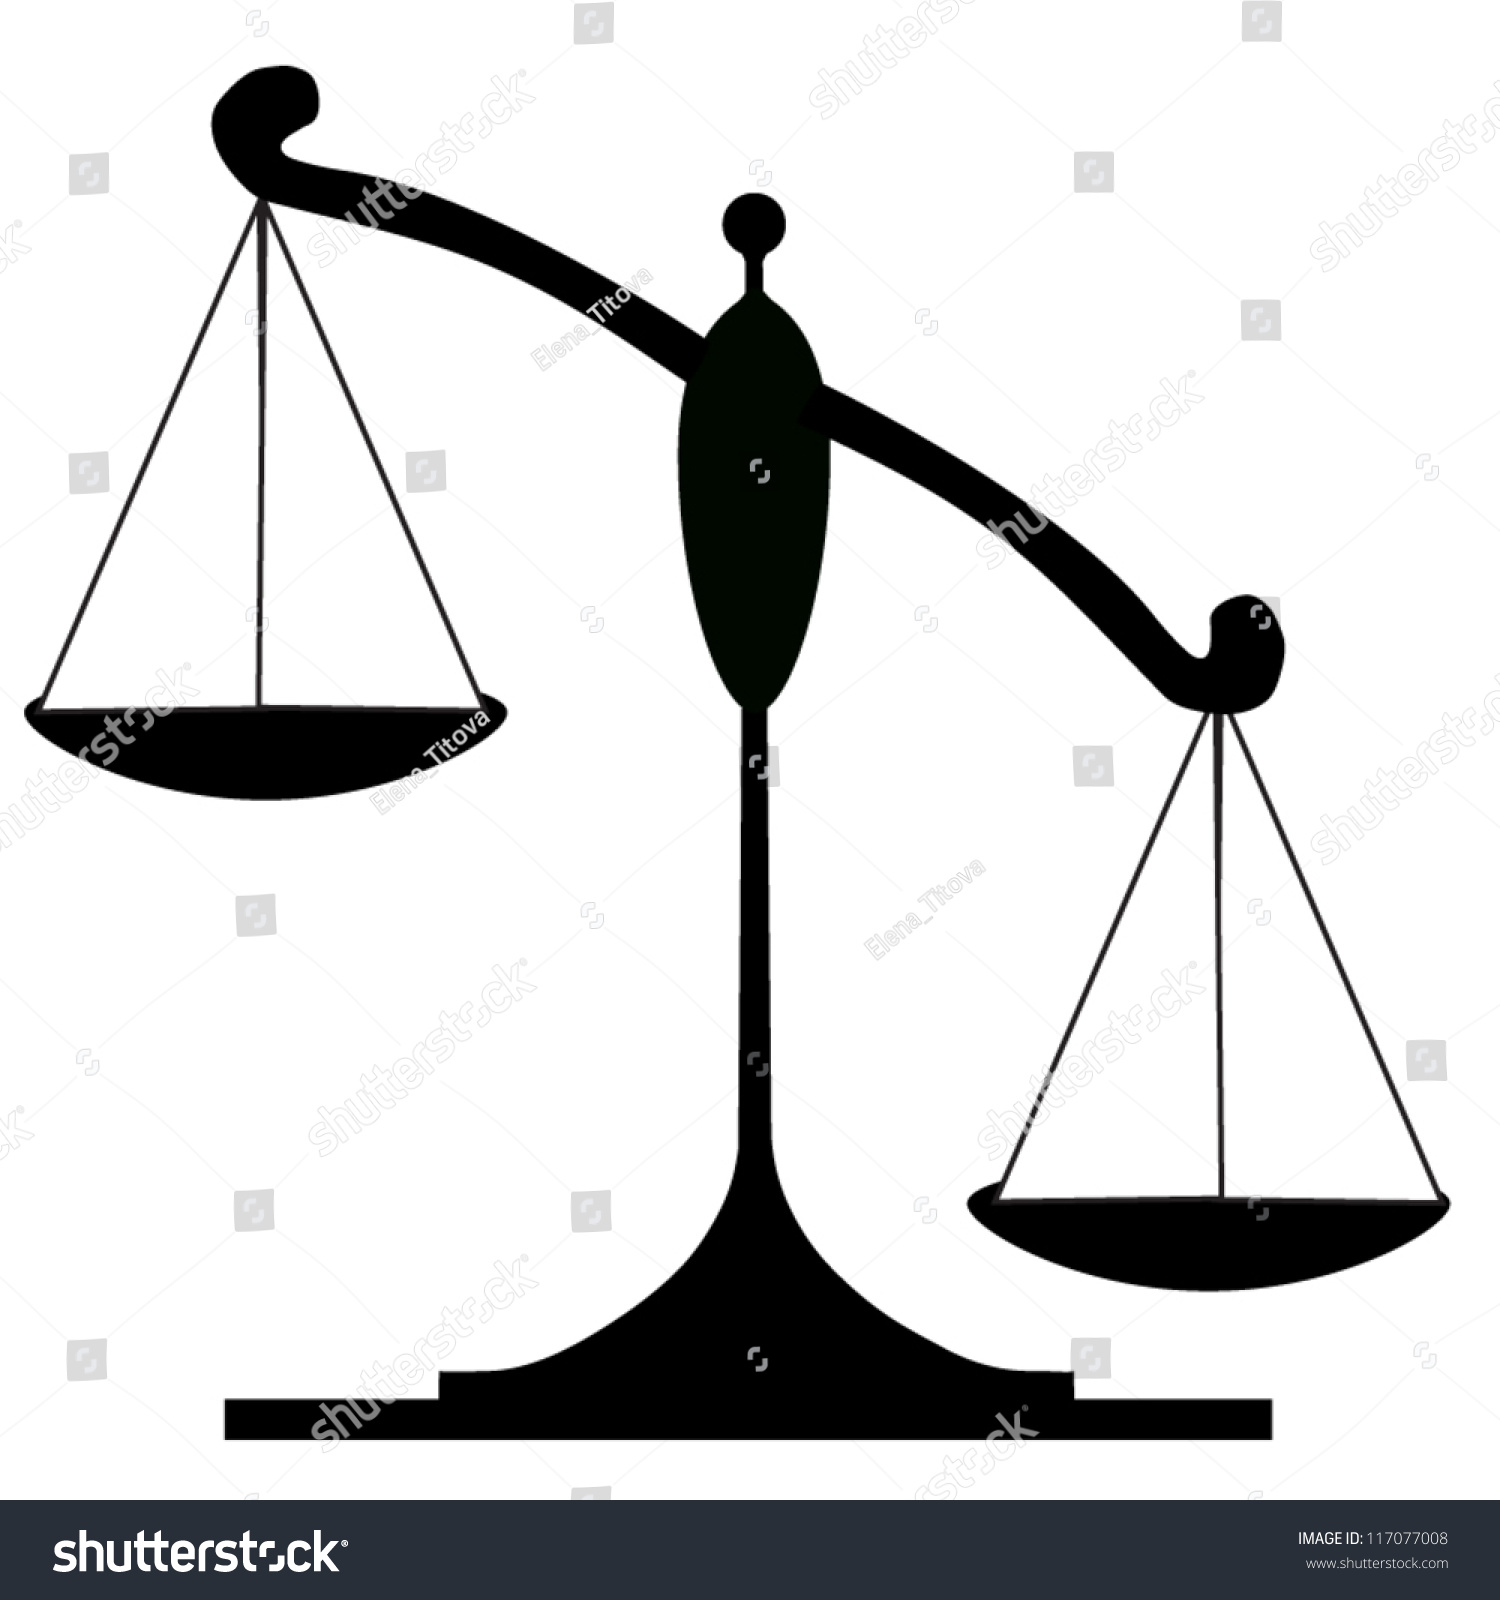 Icon Justice Scales Stock Vector 117077008 - Shutterstock